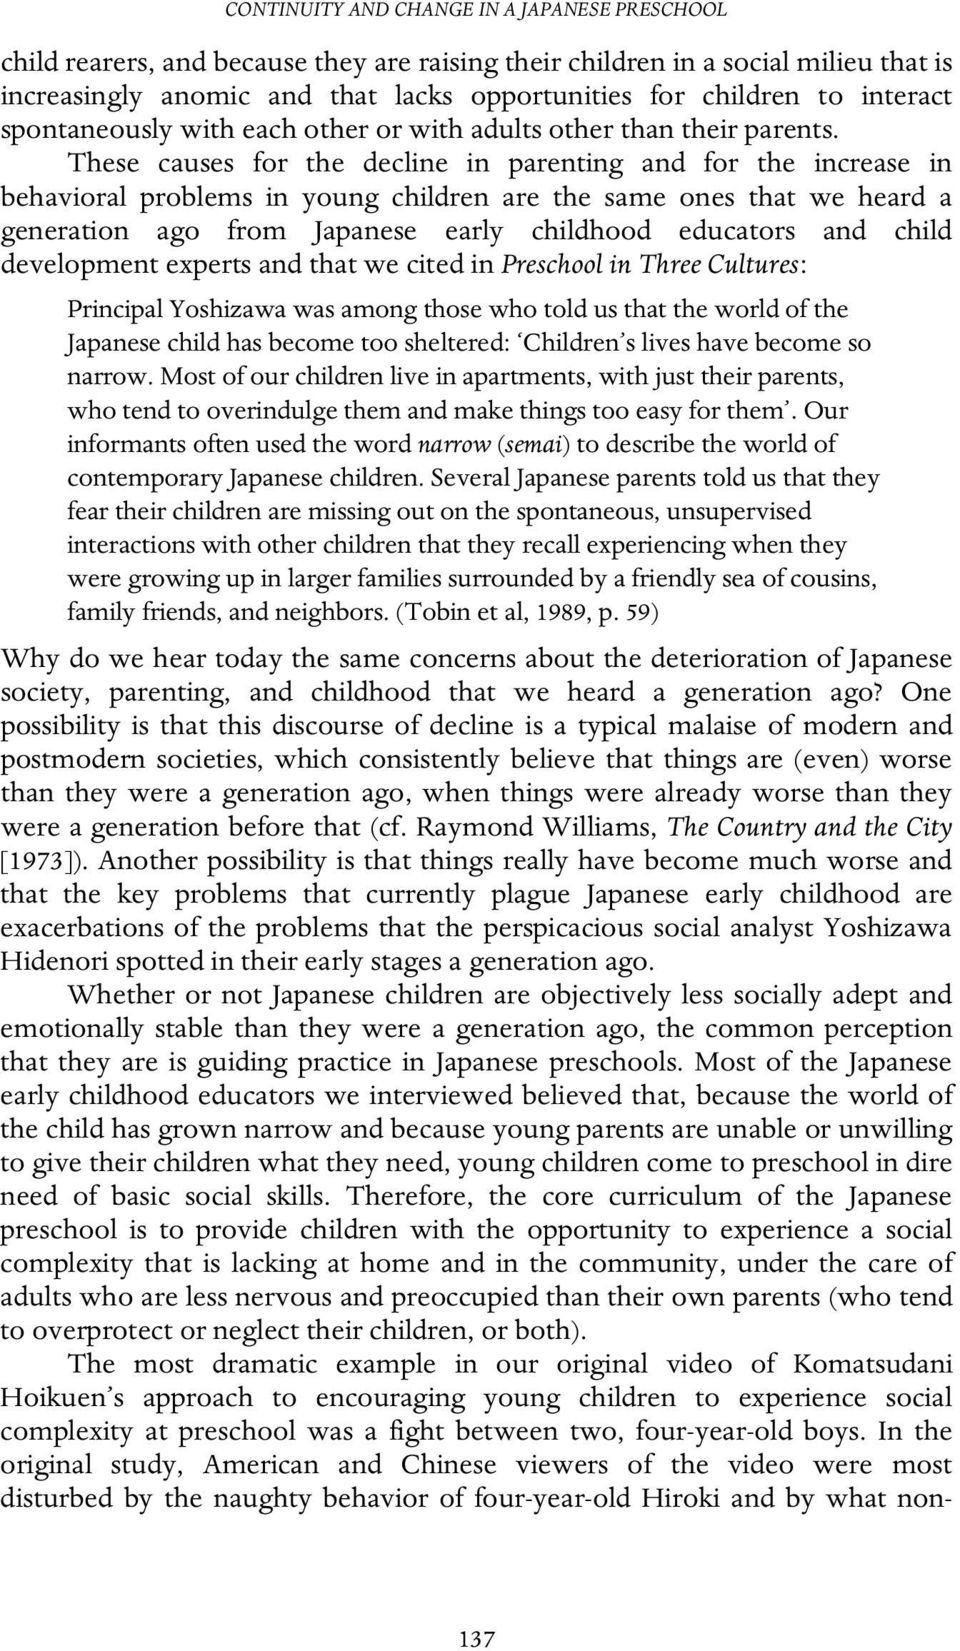 These causes for the decline in parenting and for the increase in behavioral problems in young children are the same ones that we heard a generation ago from Japanese early childhood educators and